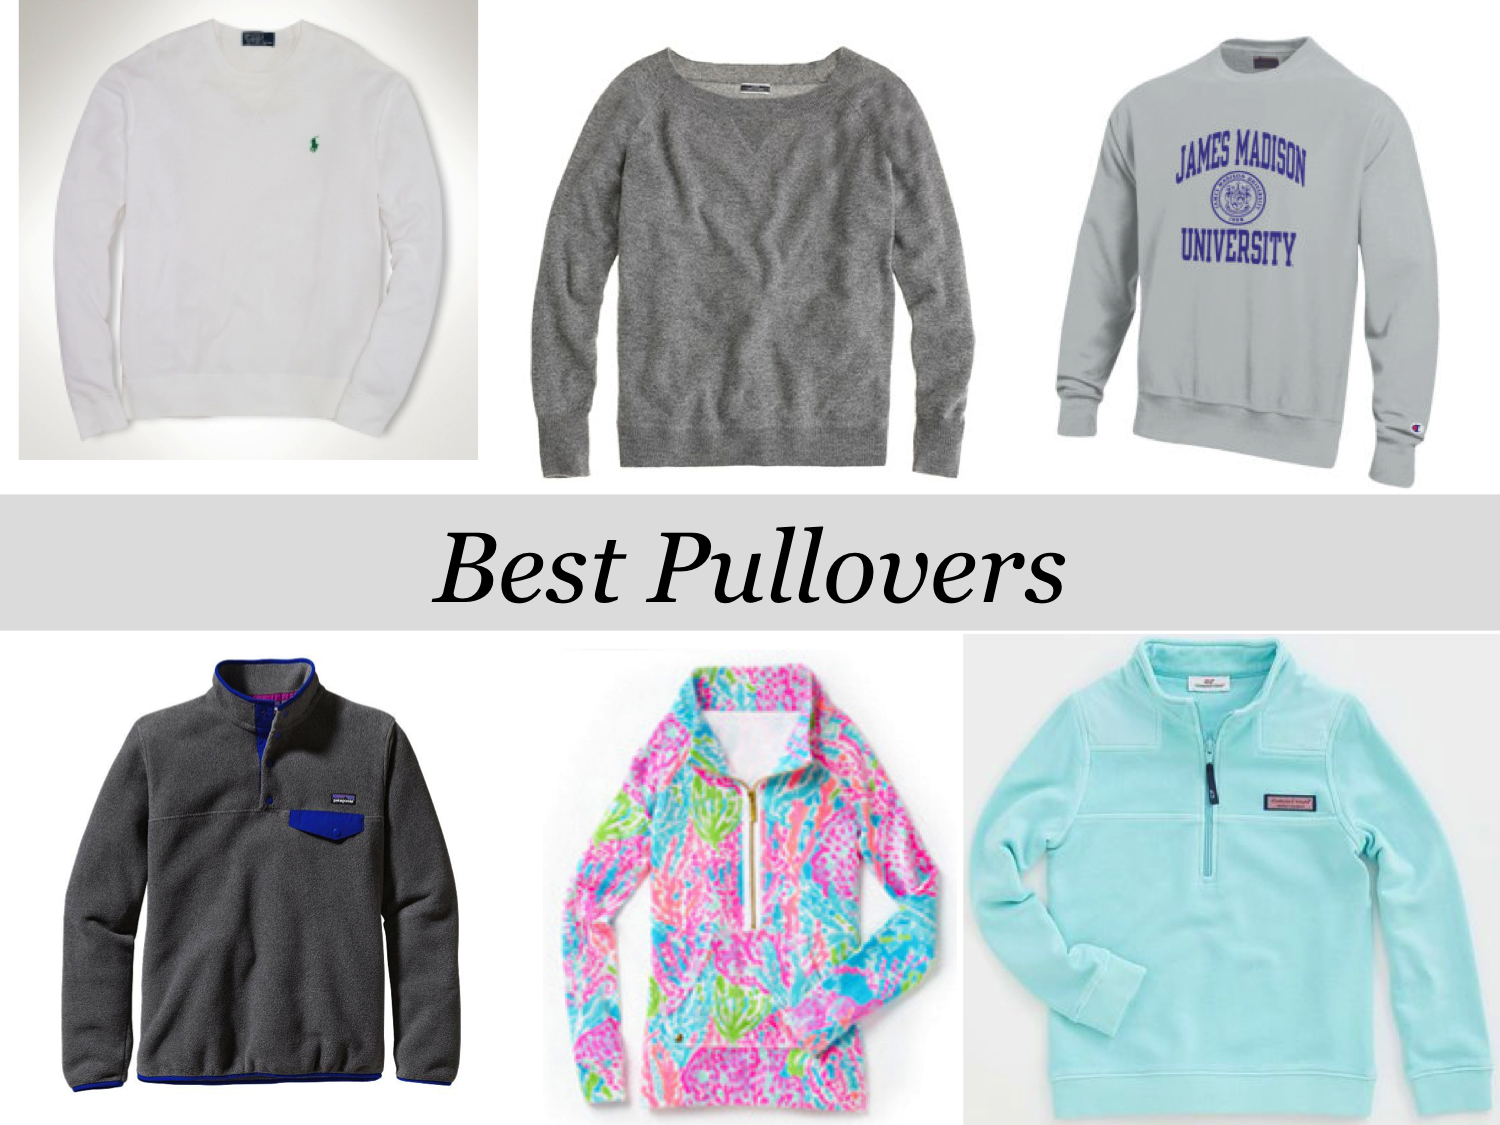 Summer Wind Best Pullovers Jaket Hoodie Jumper Abslt I Think Most People Wouldnt Take Me As A Sweatshirt Girl Im Usually Always Pretty Dressed Up But Really Sweatshirts Are My Absolute Favorite